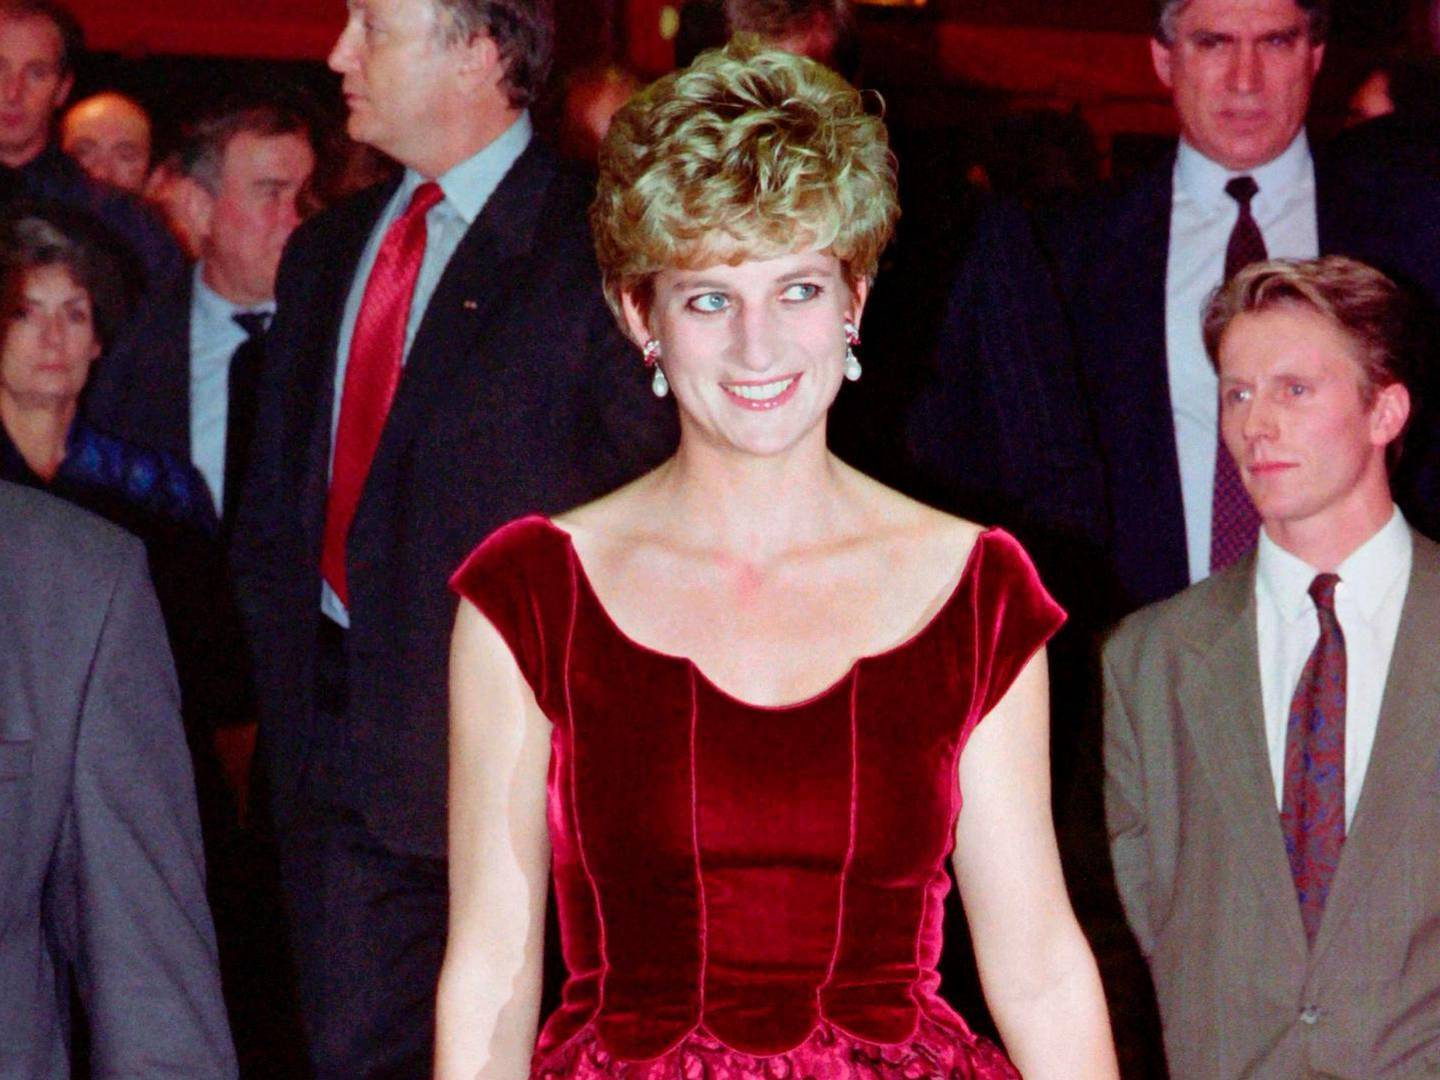 """(FILES) This file photo taken on November 15, 1992 shows Britain's Diana, Princess of Wales, arriving at the Lille Congress Hall in Lille, France, for the opening of Paul McCartney's oratorio """"Liverpool"""". Princess Diana revolutionised the royal dress code with the help of some of the world's greatest designers during a glamorous life that came to a tragic end on August 31, 1997, 20 years ago this month. / AFP PHOTO / AFP PHOTO AND POOL / Jacques DEMARTHON"""